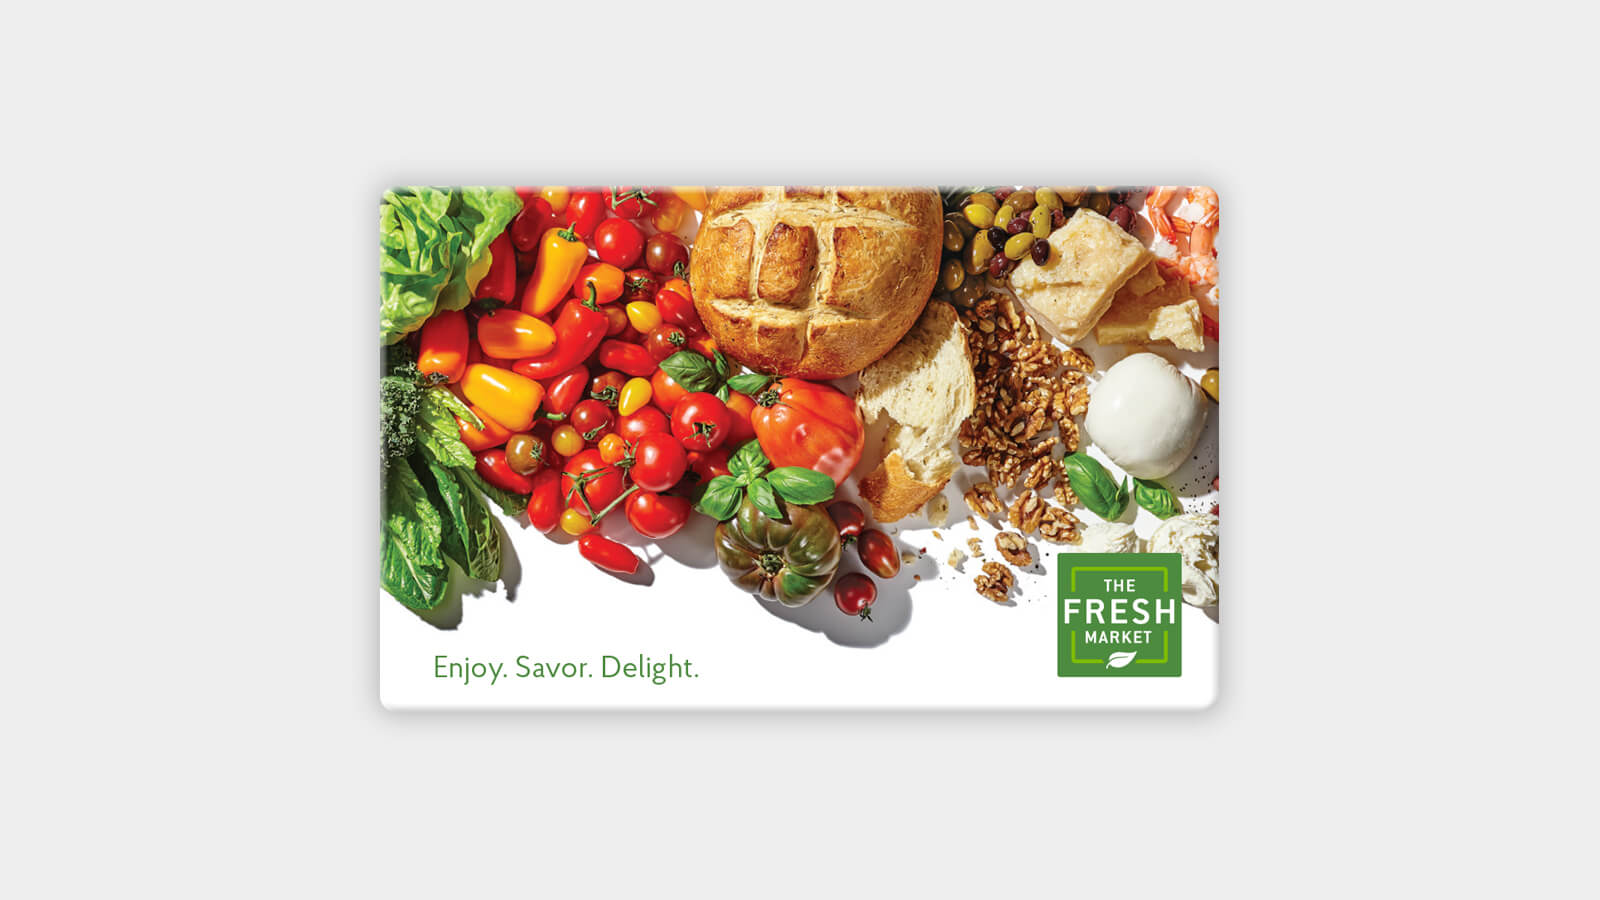 graphic relating to Deal a Meal Cards Printable identify The Refreshing Market place Present Card - items - Shipping and delivery - The Refreshing Industry